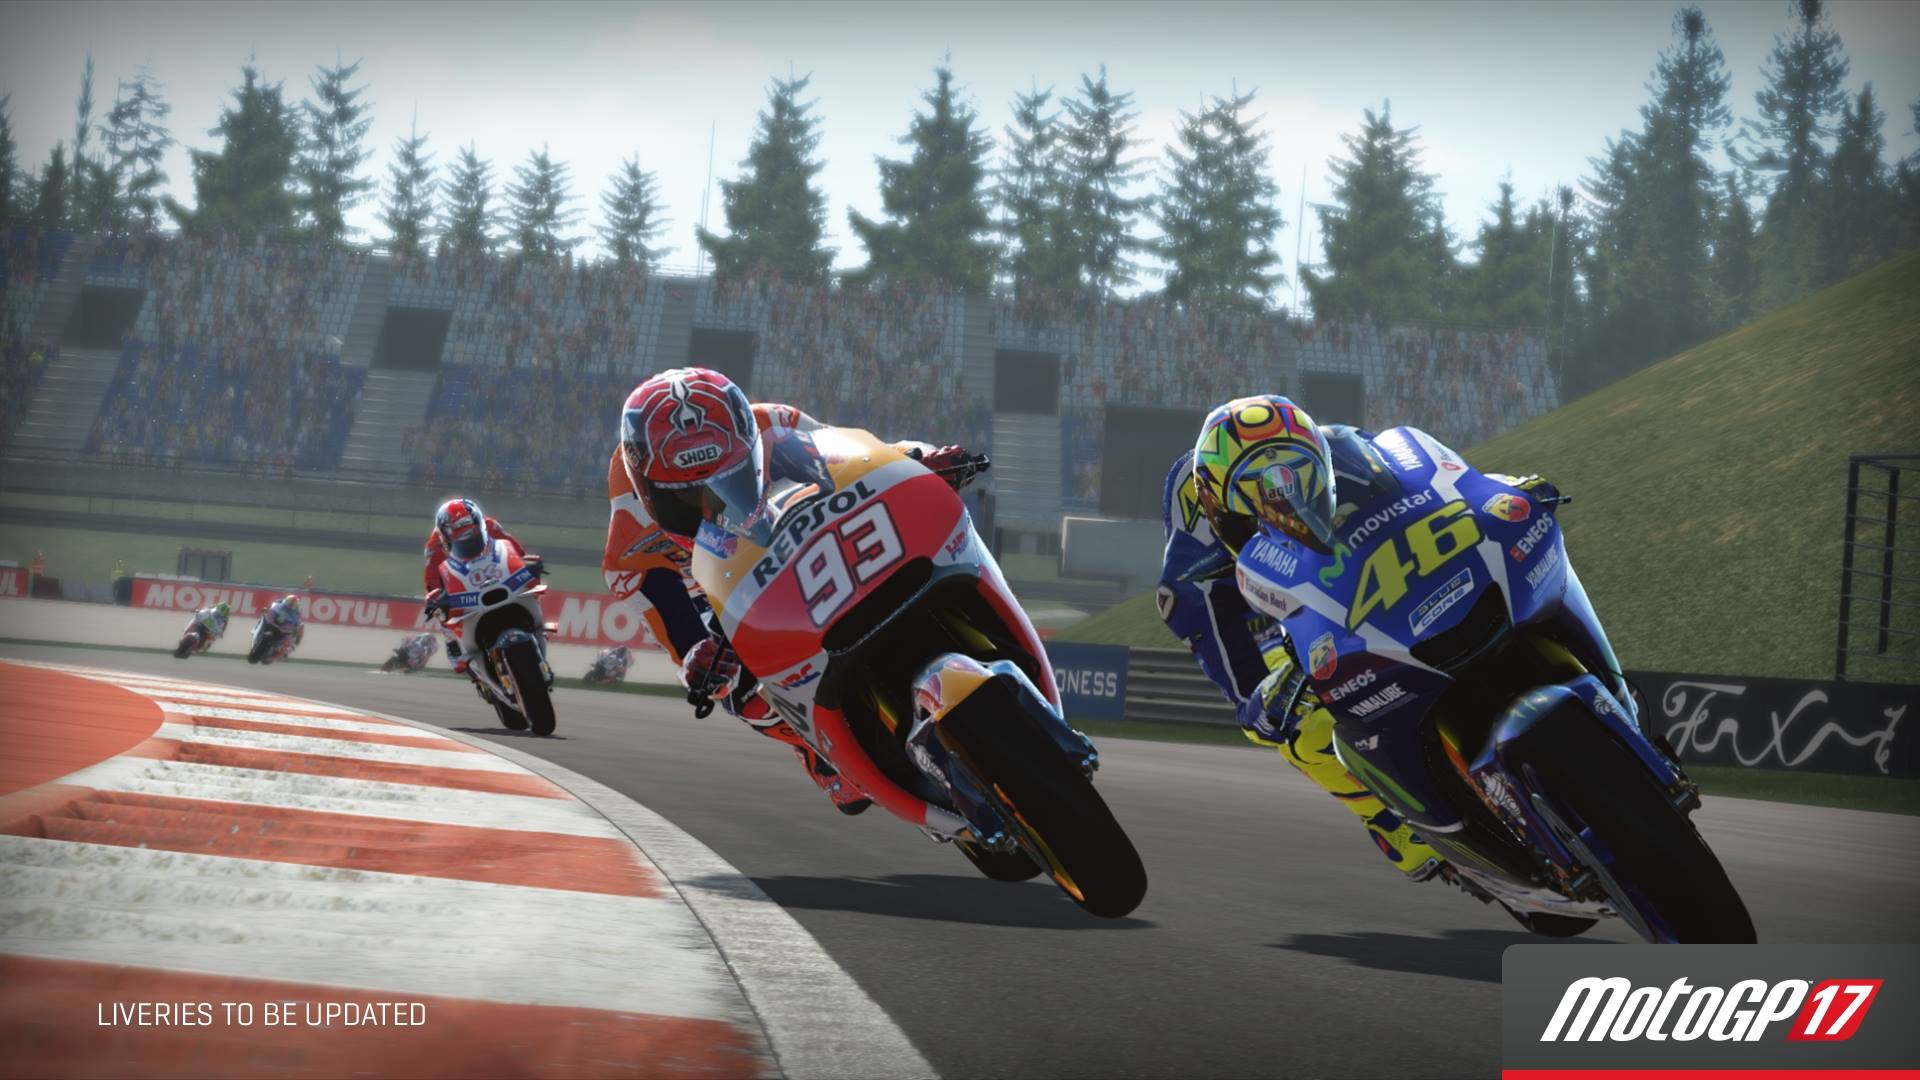 MotoGP 17 Review - Barely Qualifying